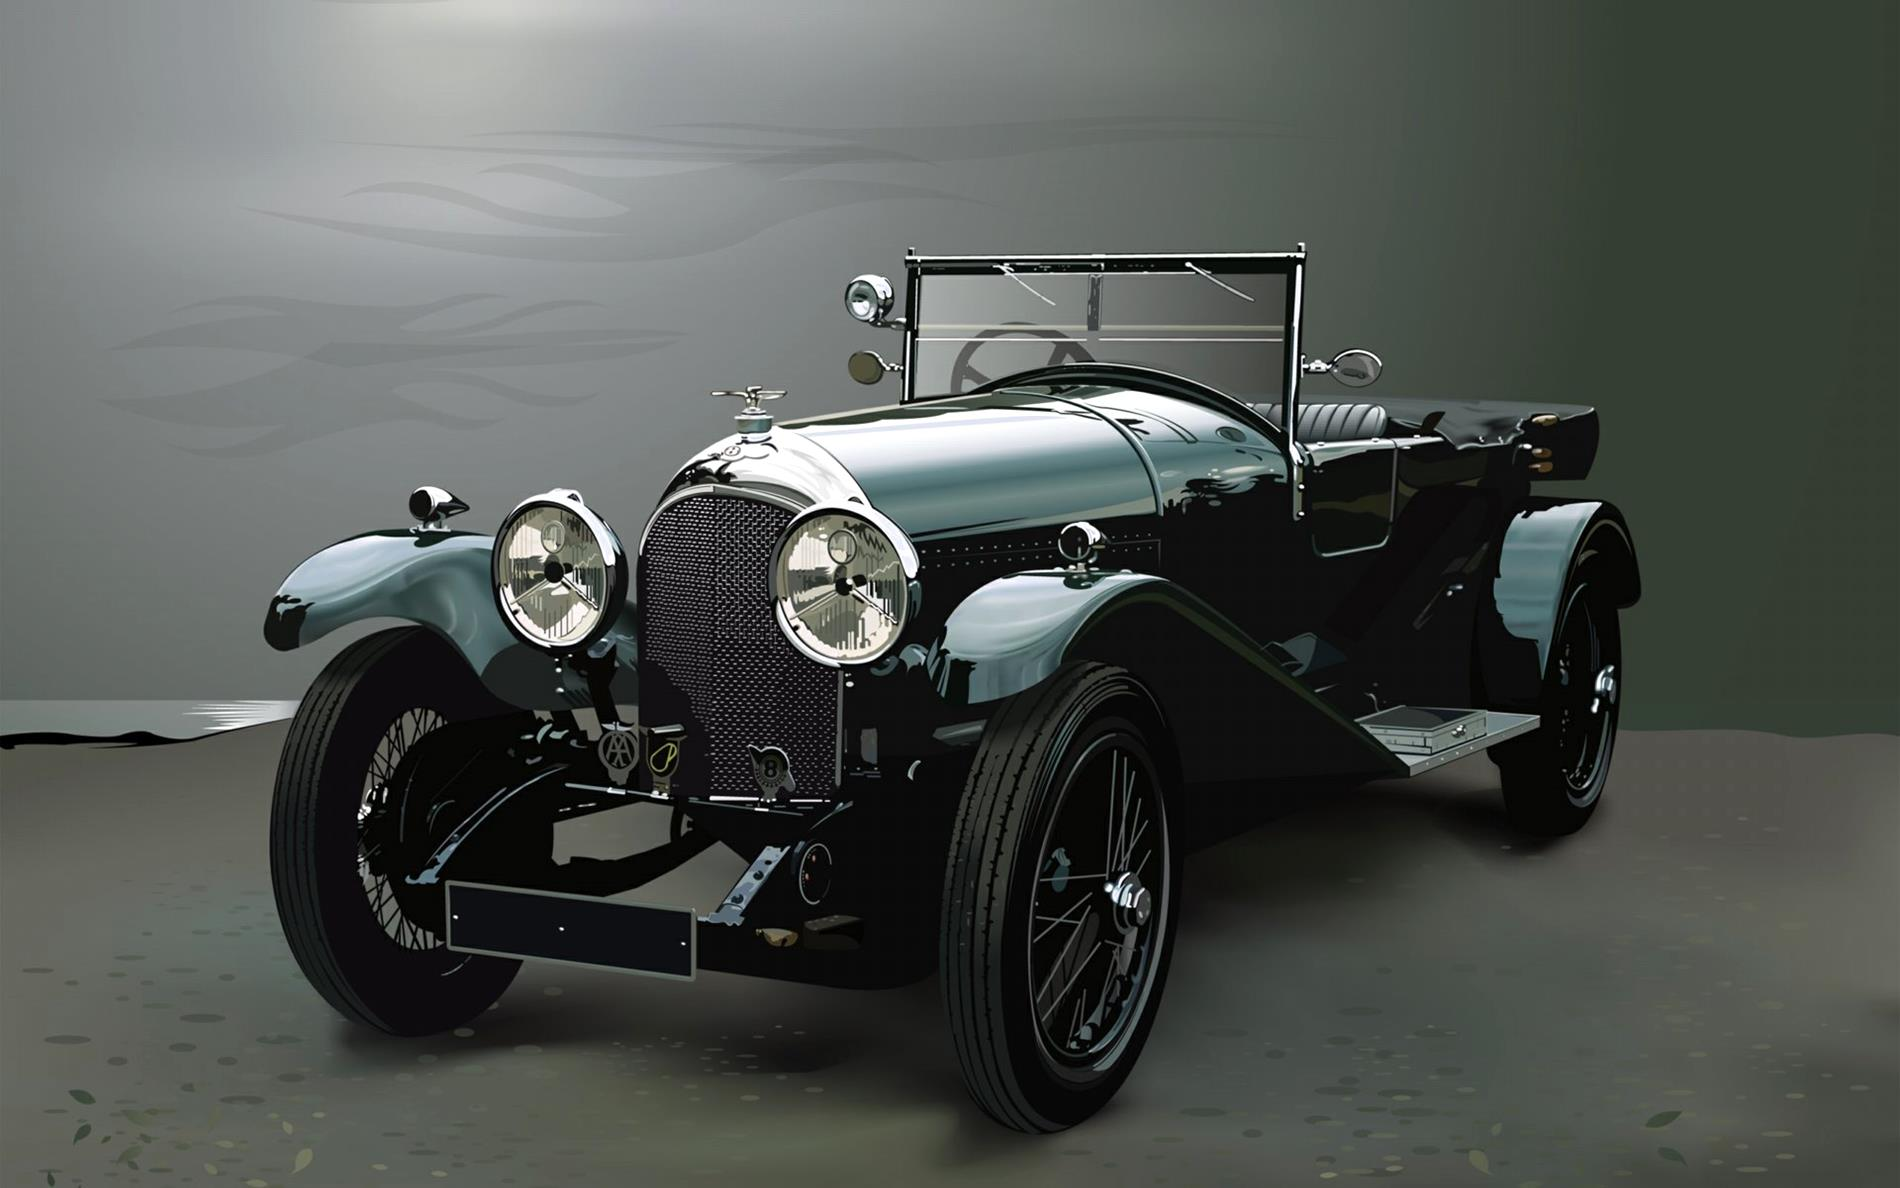 Images Of A Bentley Car Wallpaper The Best Vintage Car Wallpapers 2 Best Vintage Car Wv